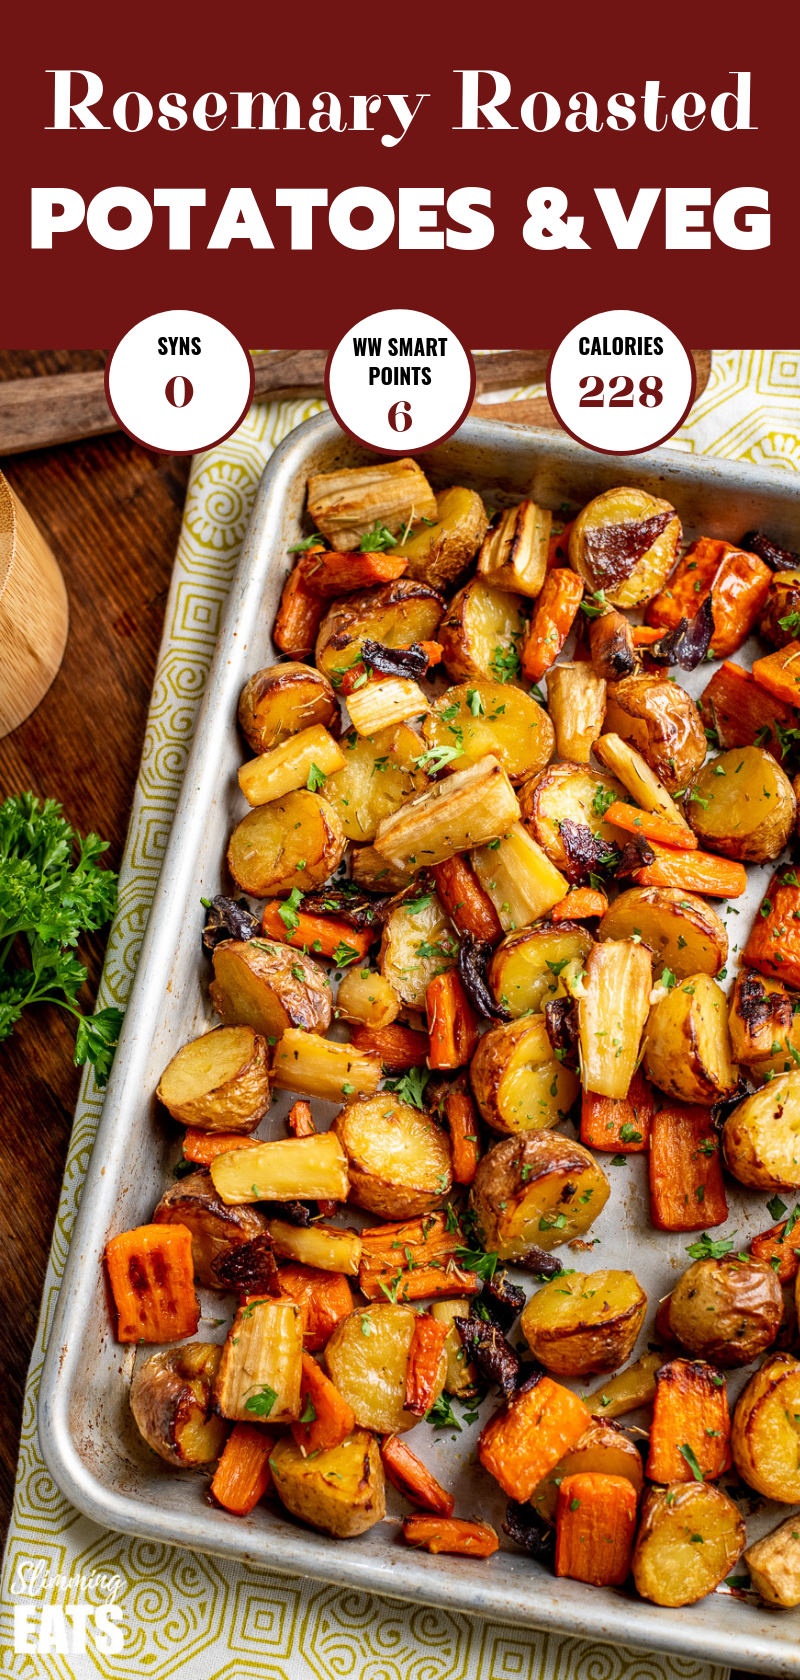 Rosemary Roasted Potatoes, Parsnips, Carrots and Onion on metal baking tray pin